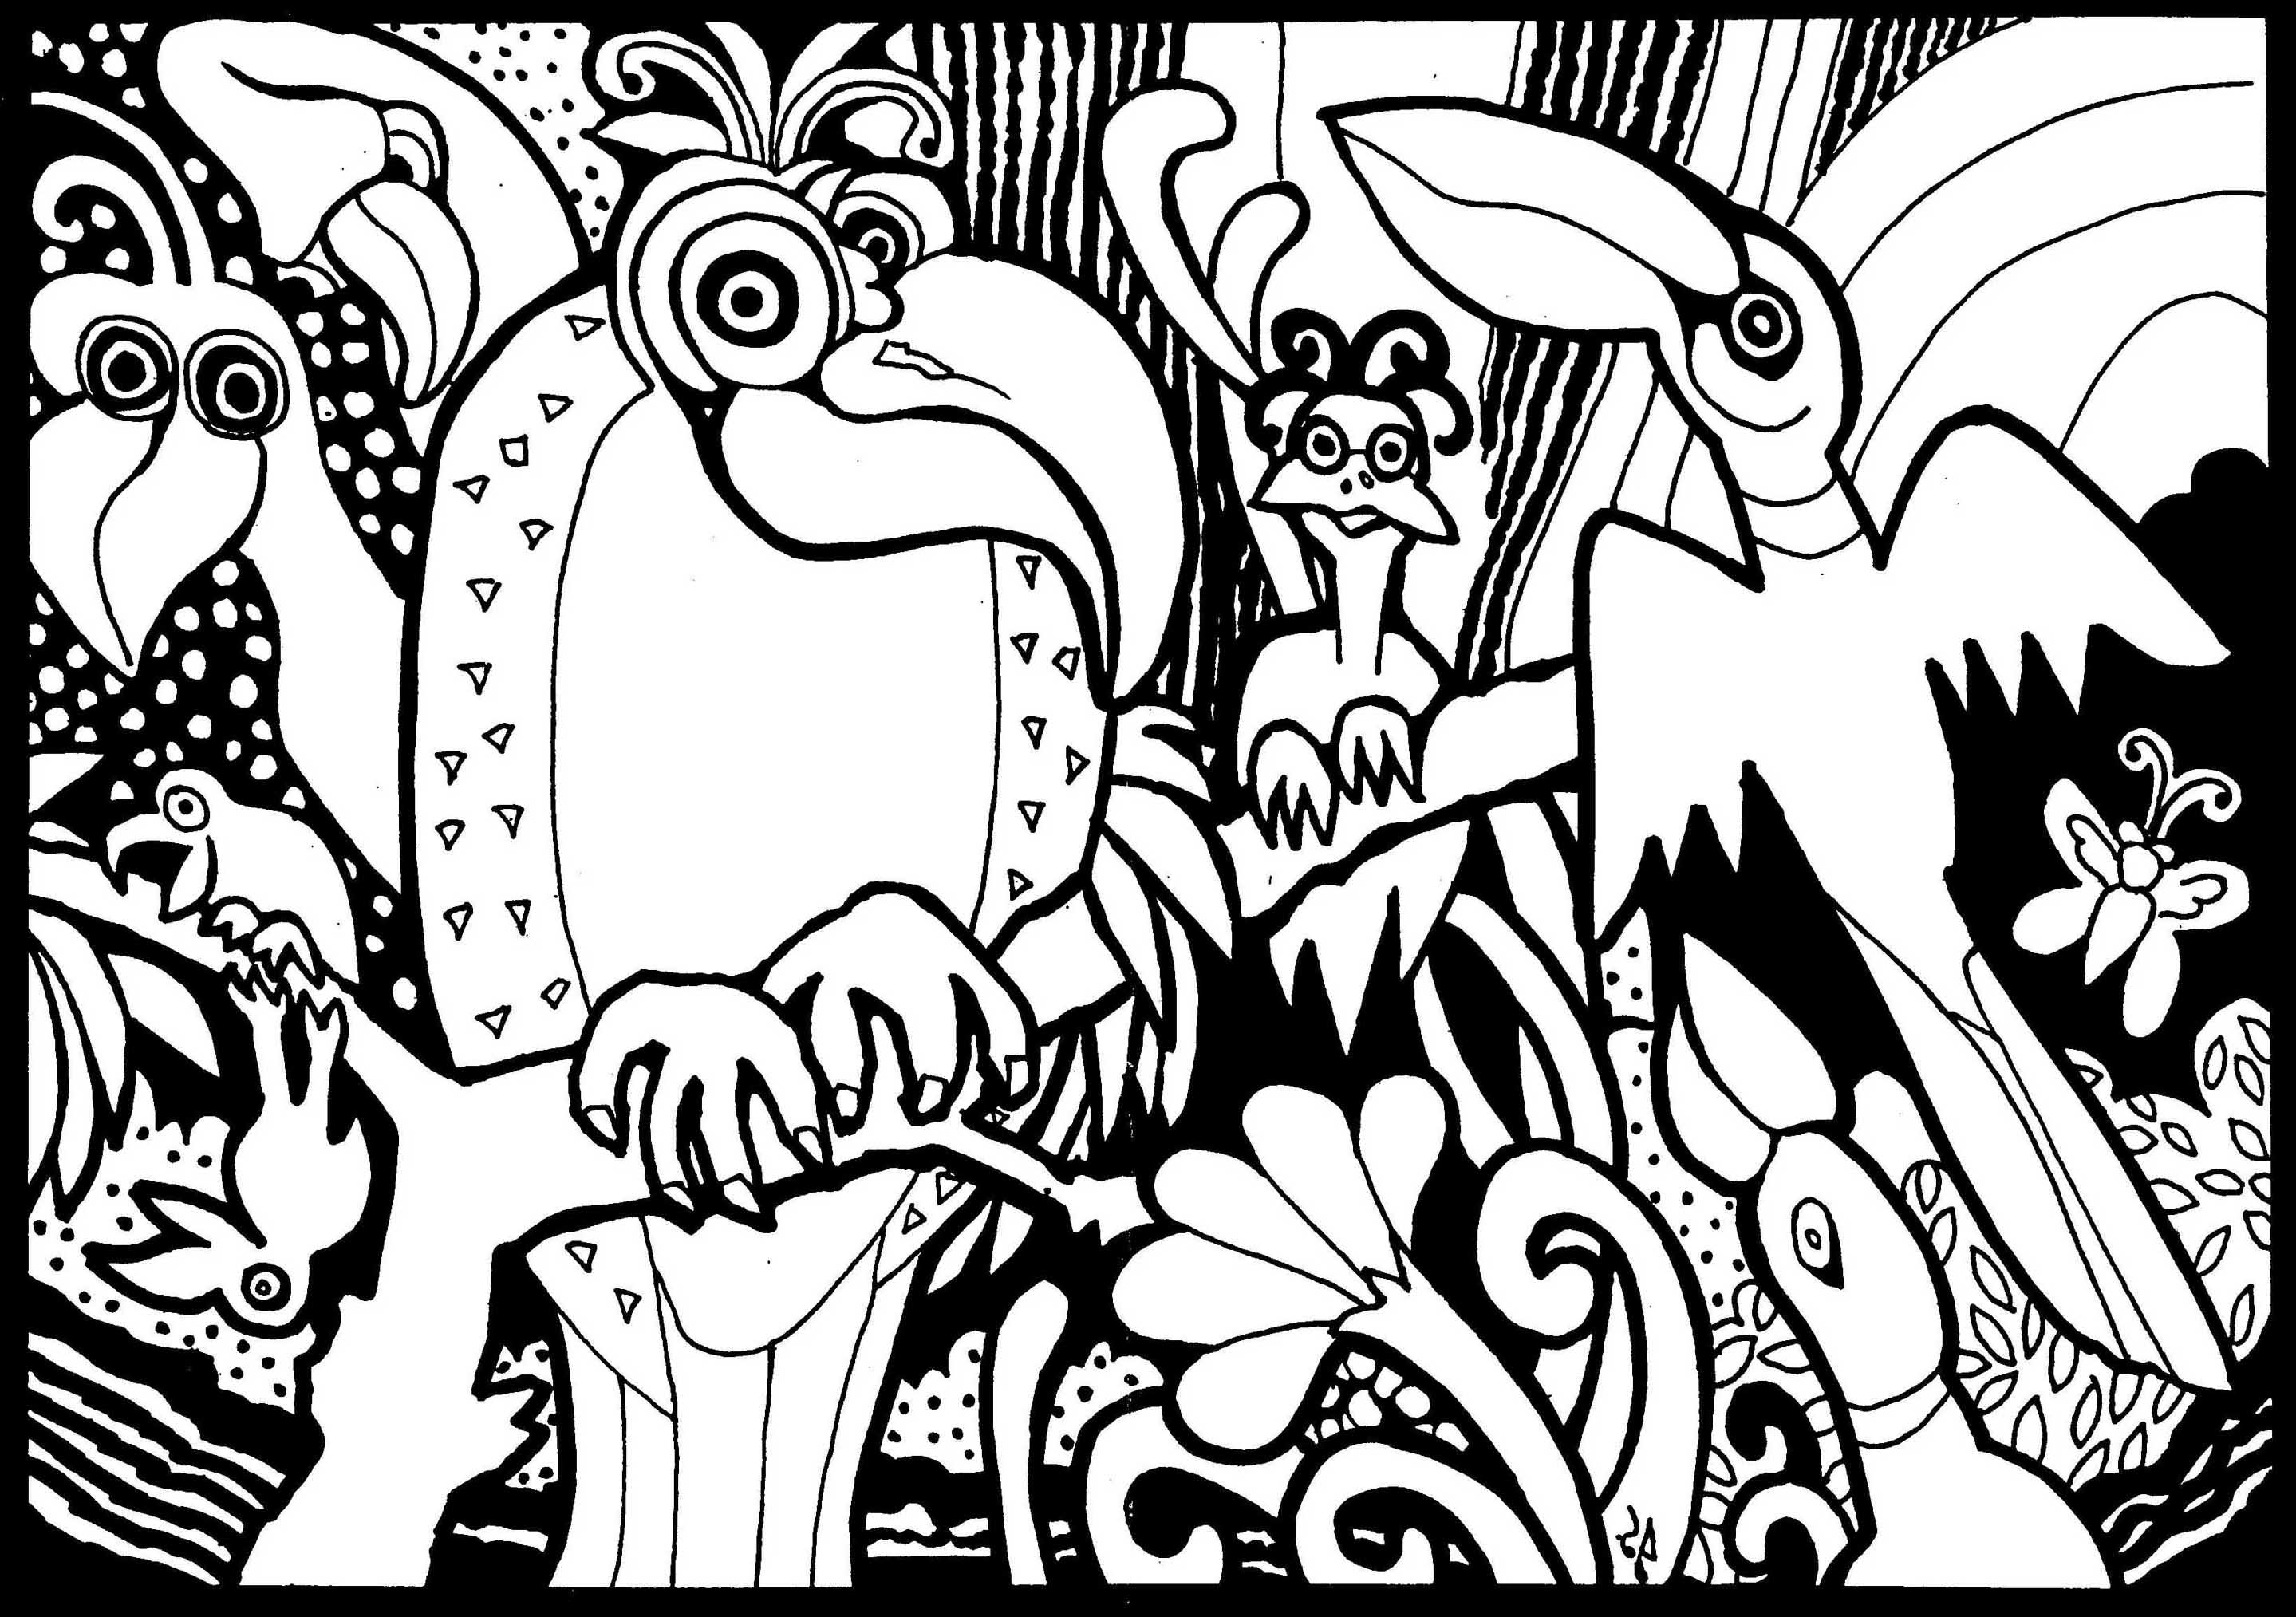 Parrots and birds - Birds Adult Coloring Pages